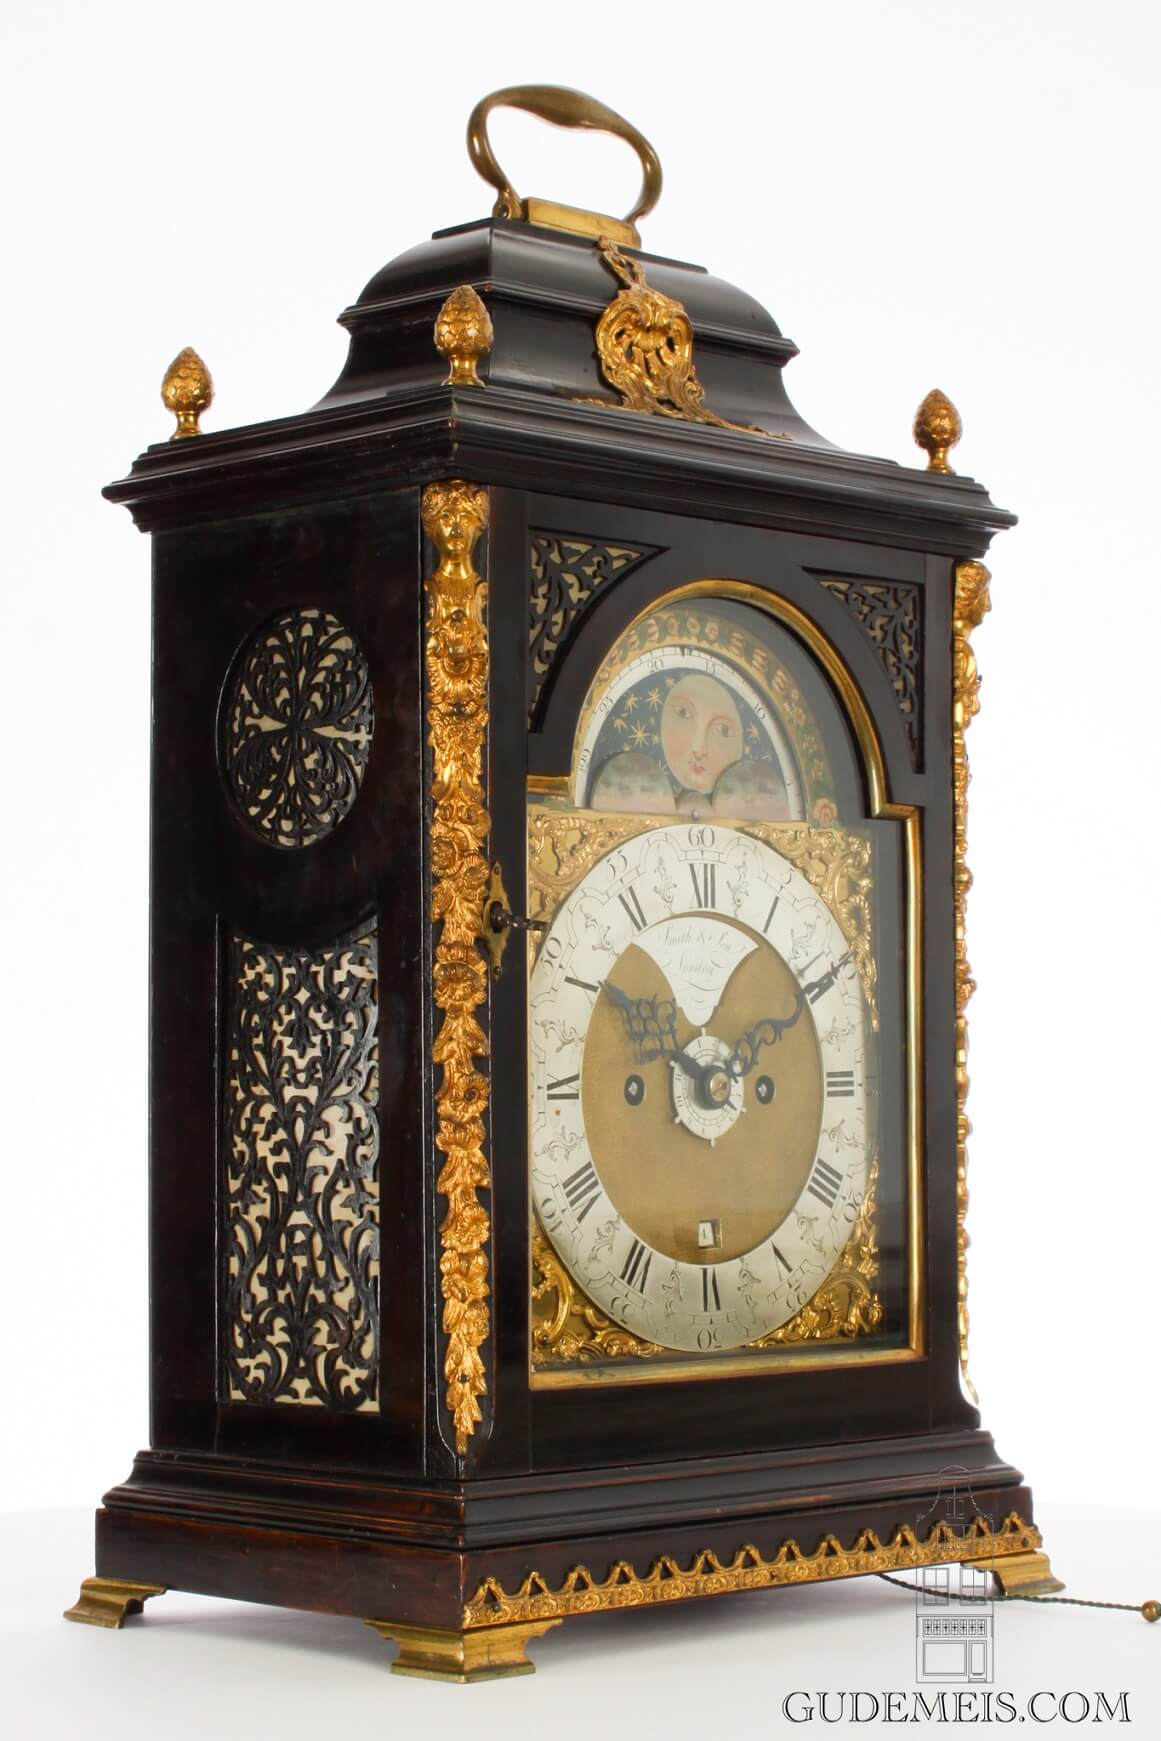 English-ebonized-brass-mounted-Dutch-striking-alarm-moonphase-date-bracket-table-antique-clock-Smith-London-